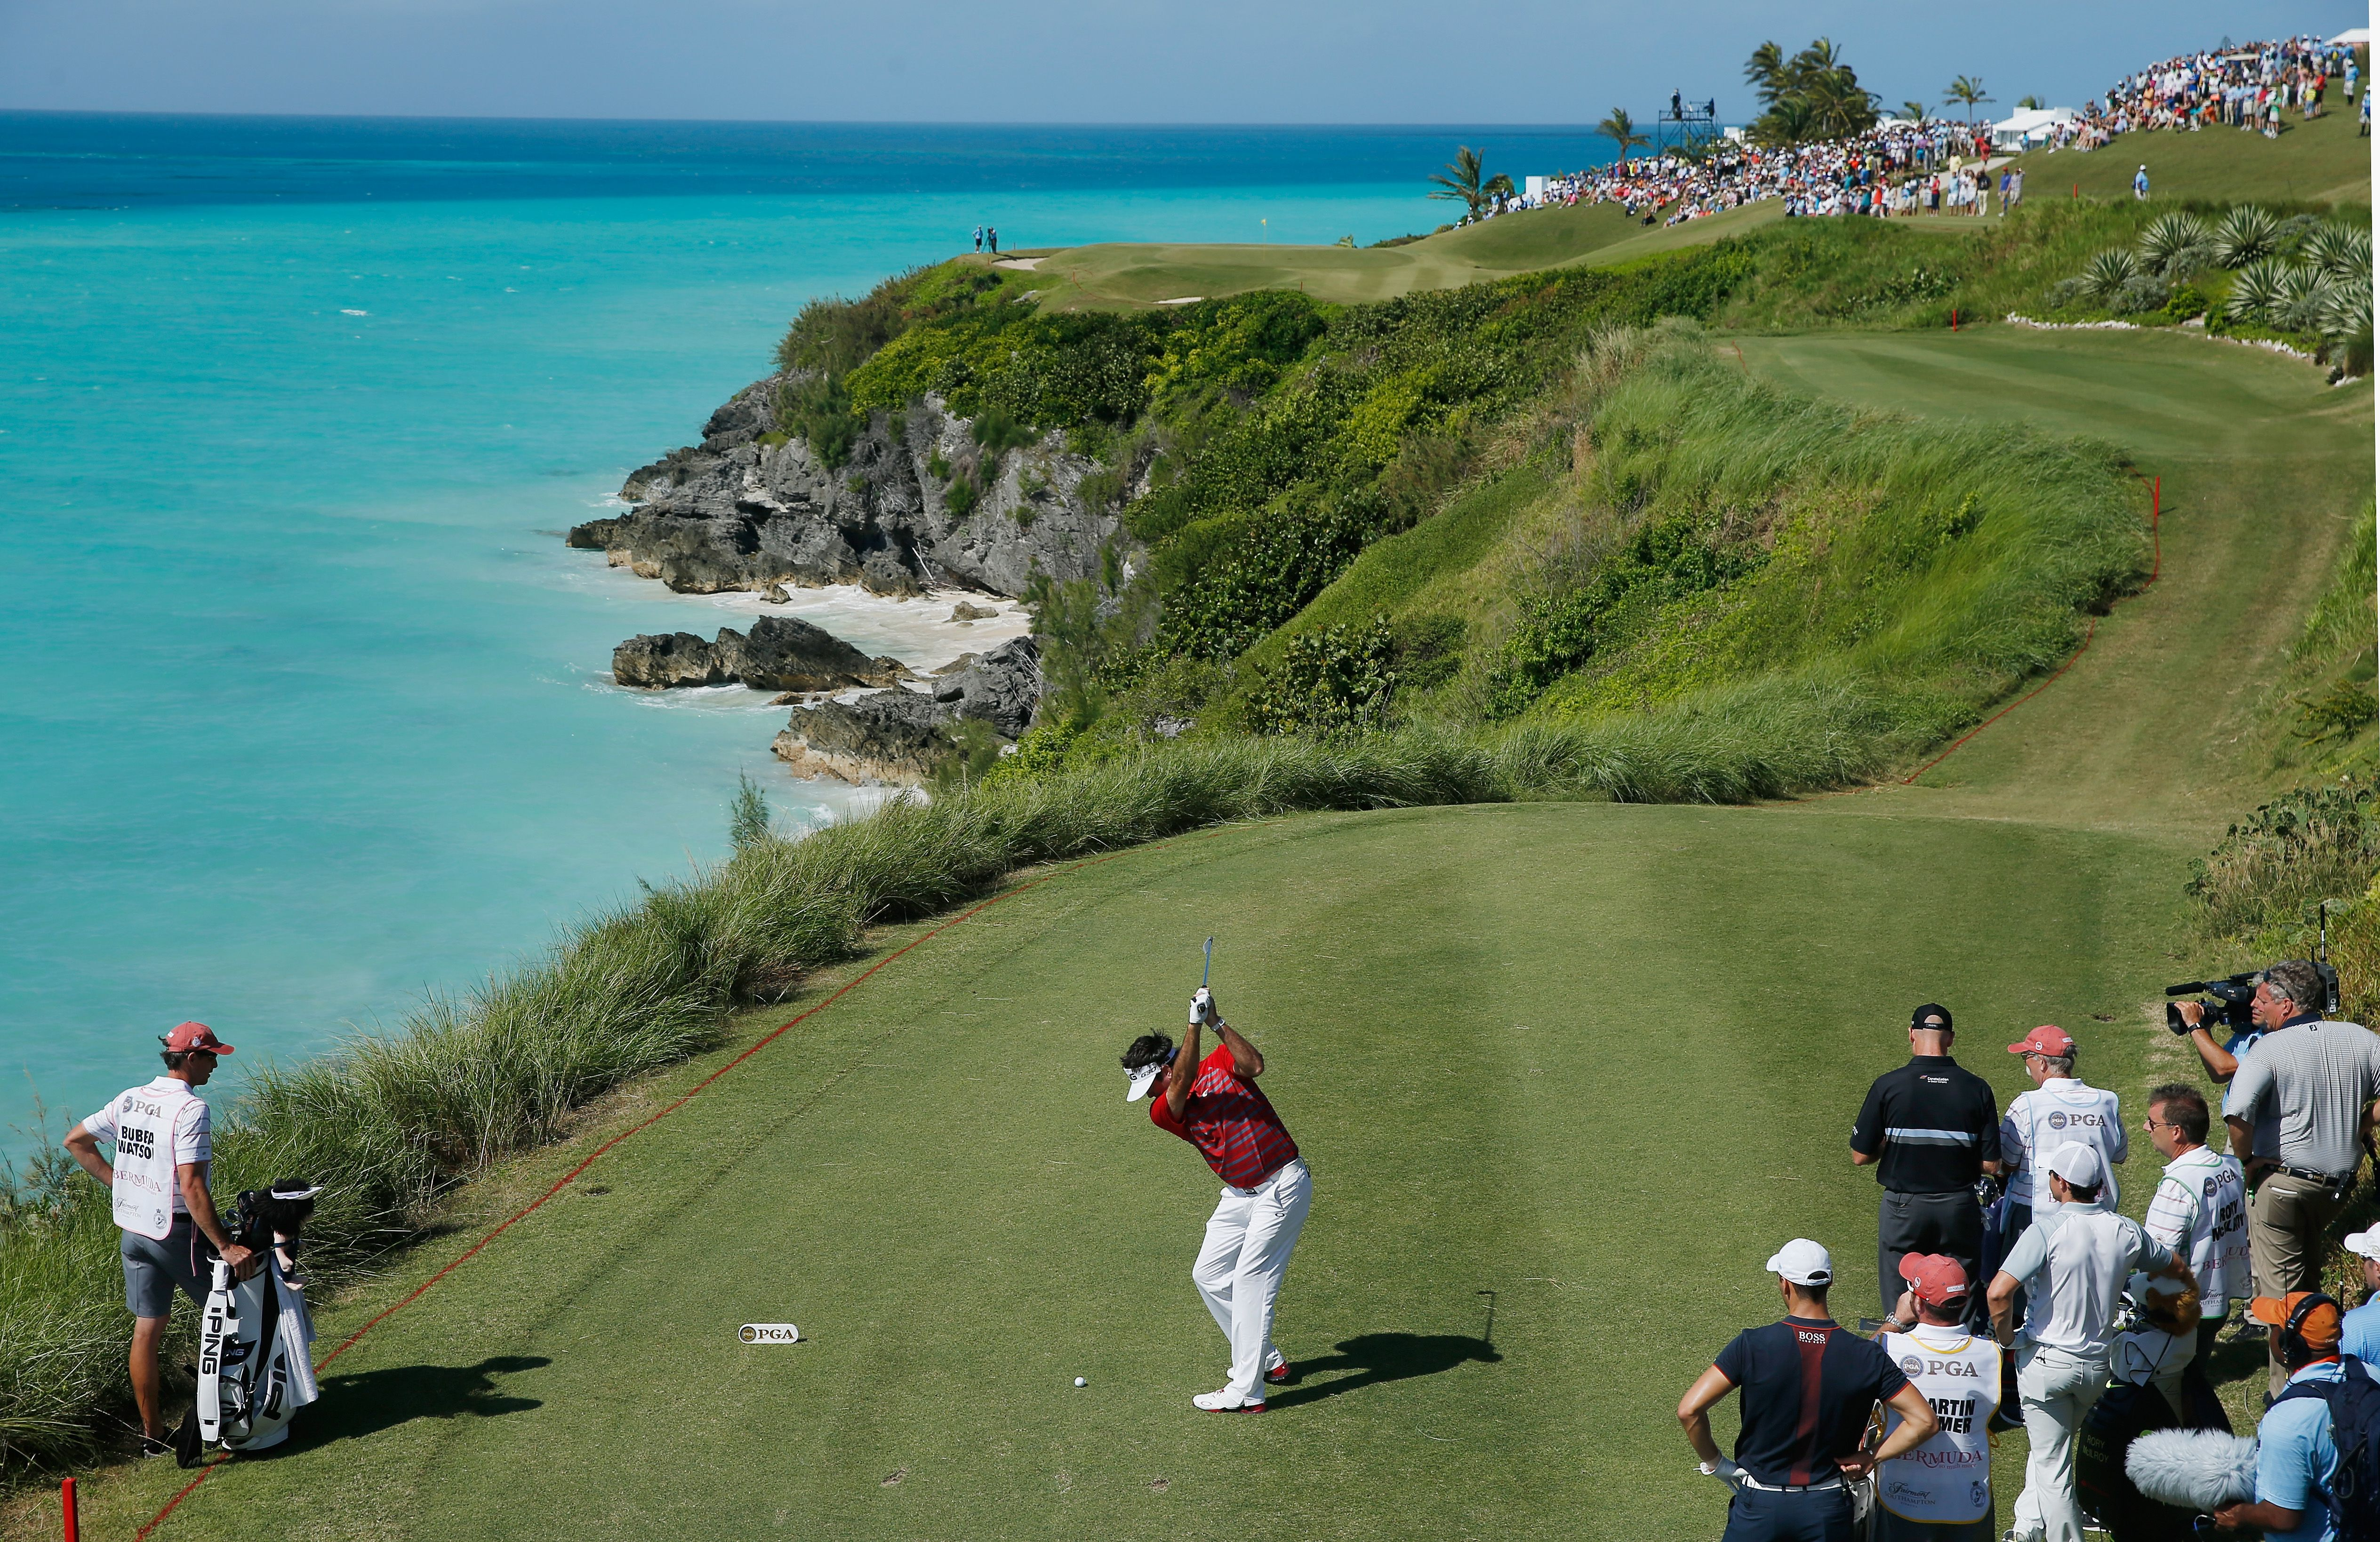 Bubba Watson of the United States hits his tee shot on the 16th hole during the final day of the PGA Grand Slam of Golf at Port Royal Golf Course in Southampton, Bermuda.